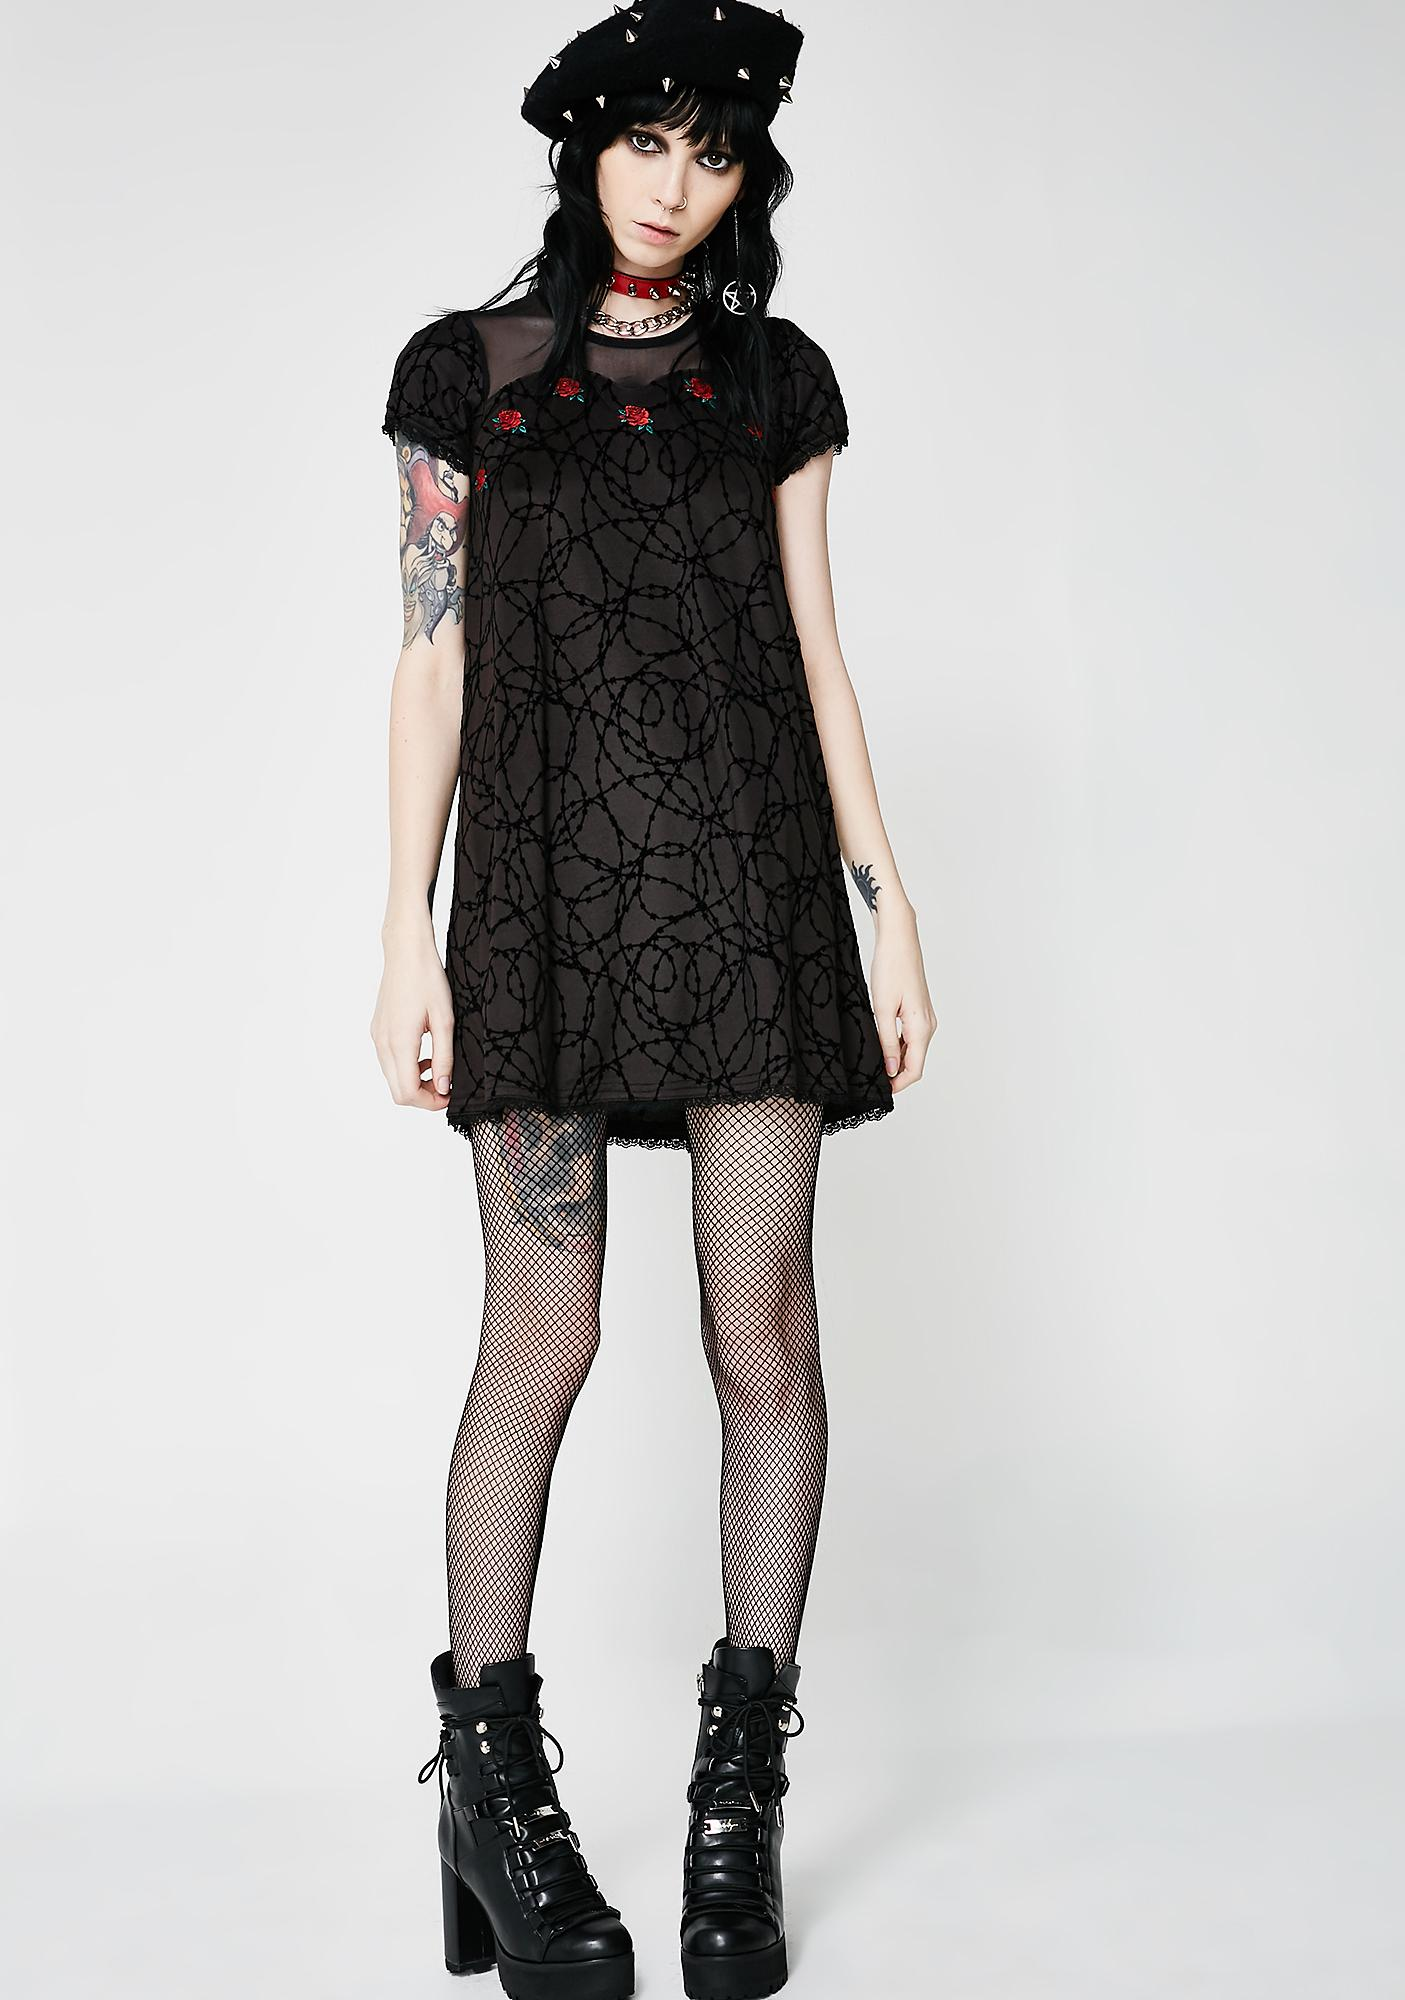 Fearless Illustration Thorn In My Side Bambi Dress